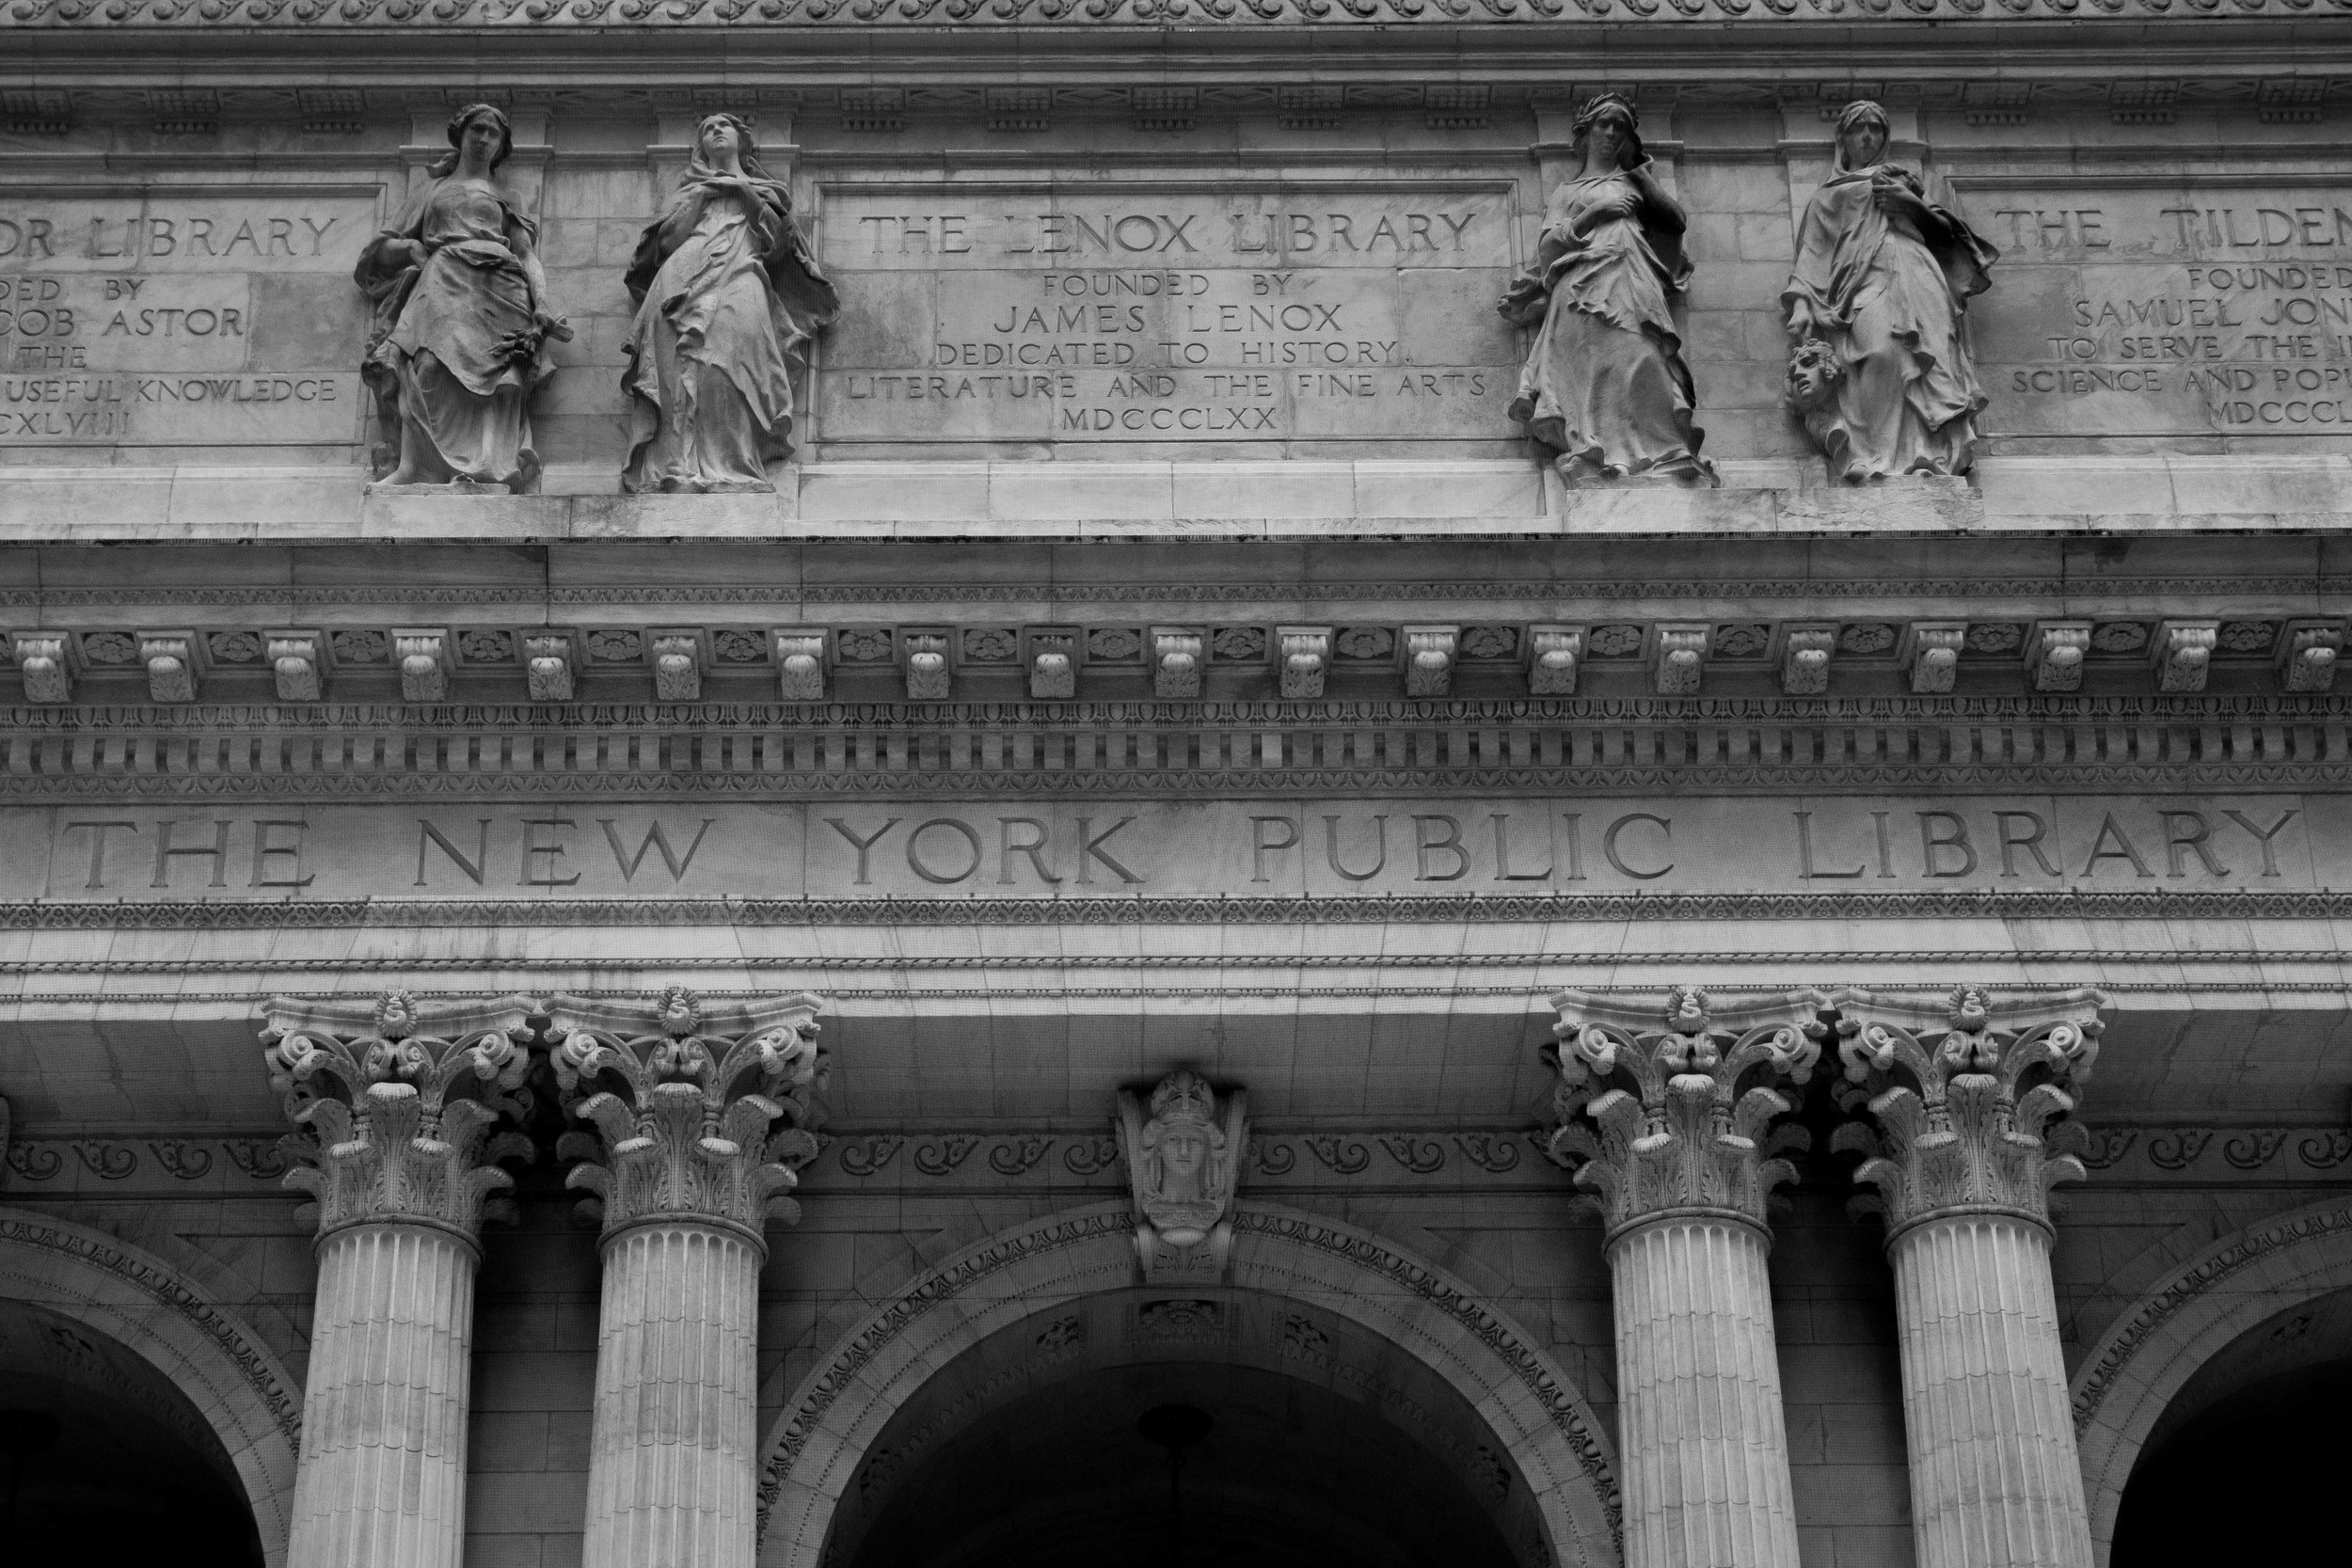 07-2014_New York_New York Public Library.jpg